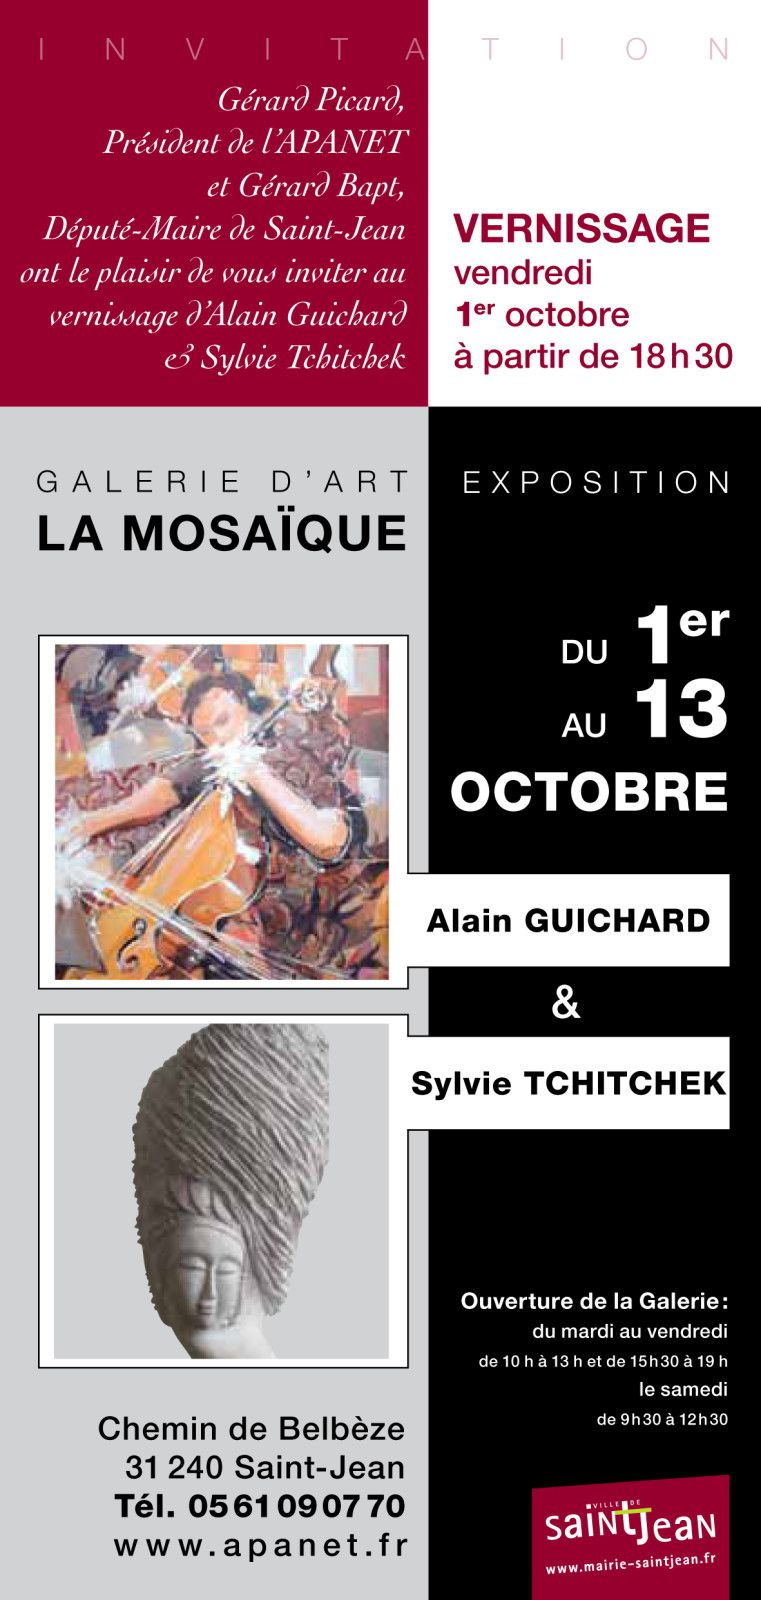 Invitation-Vernissage-Mosaique--St-Jean.jpg